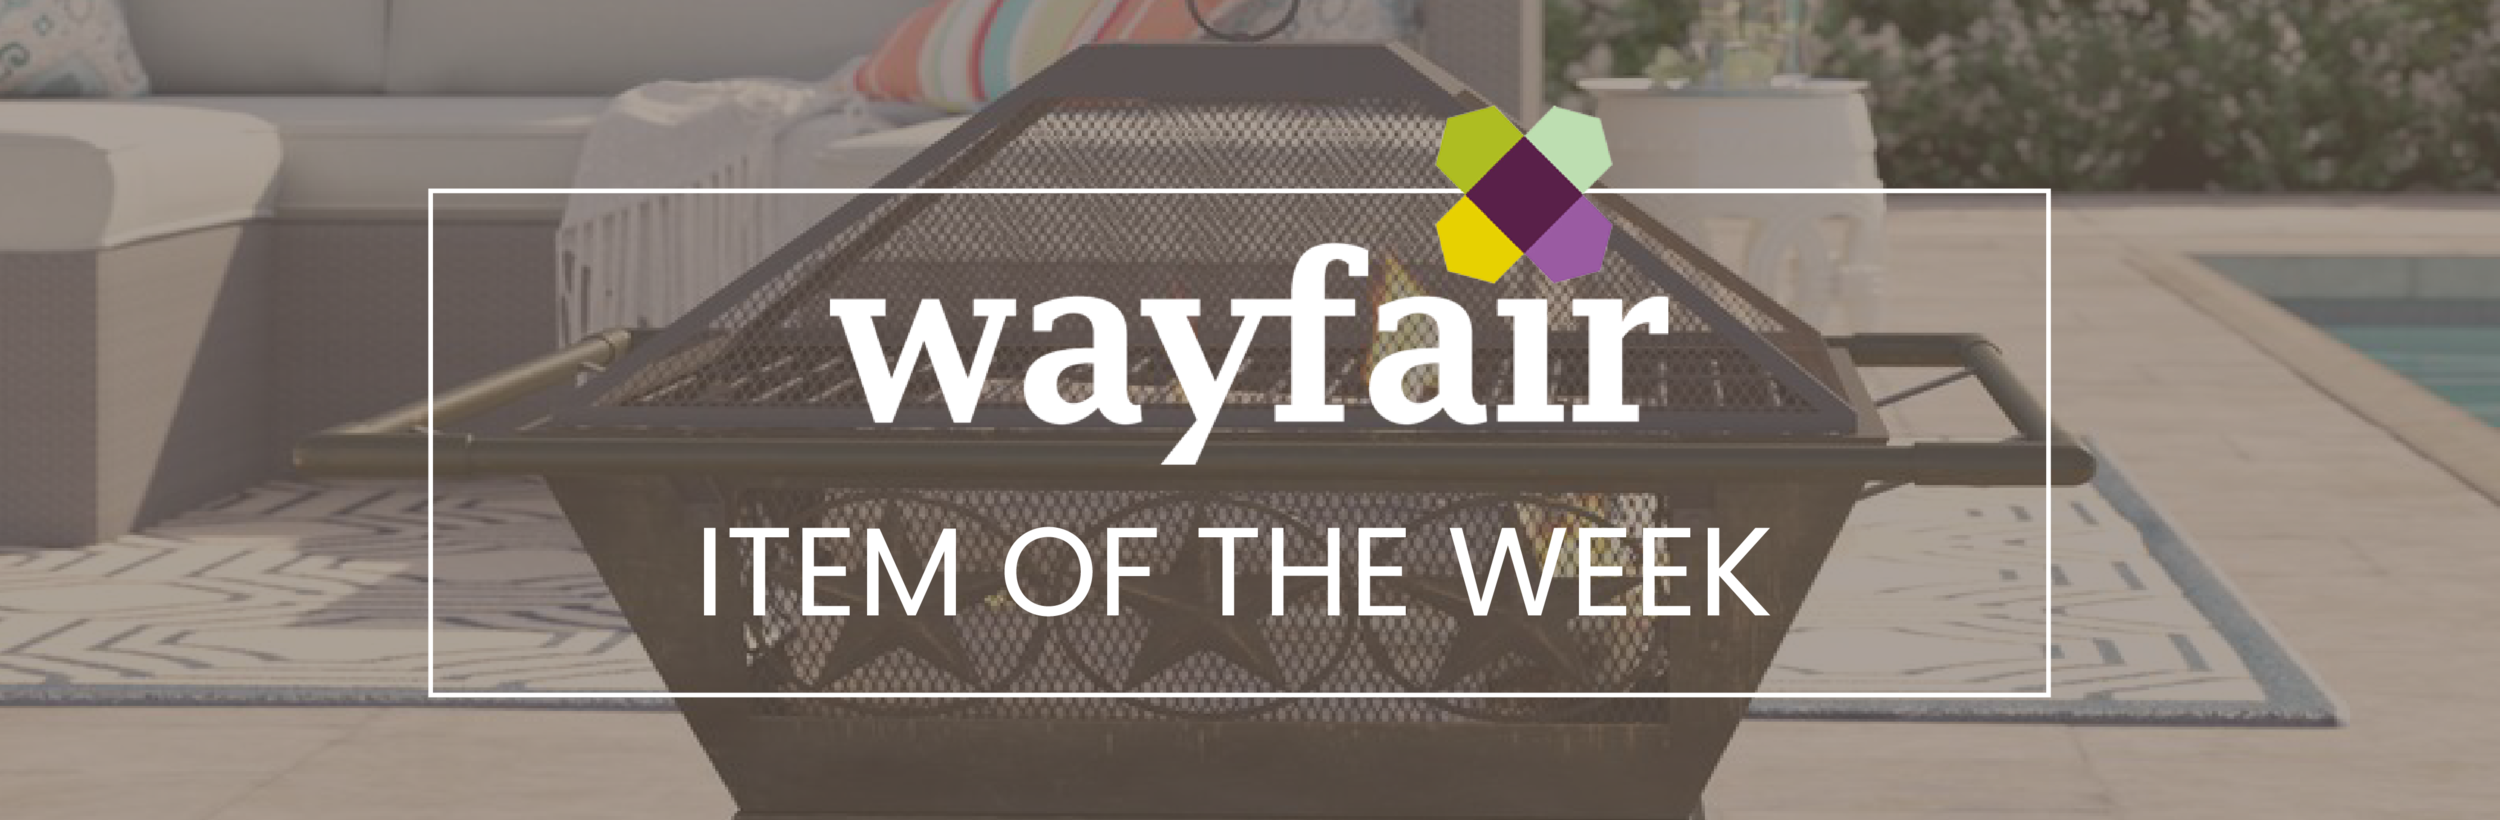 Wayfair-item-of-the-week-fire-pit